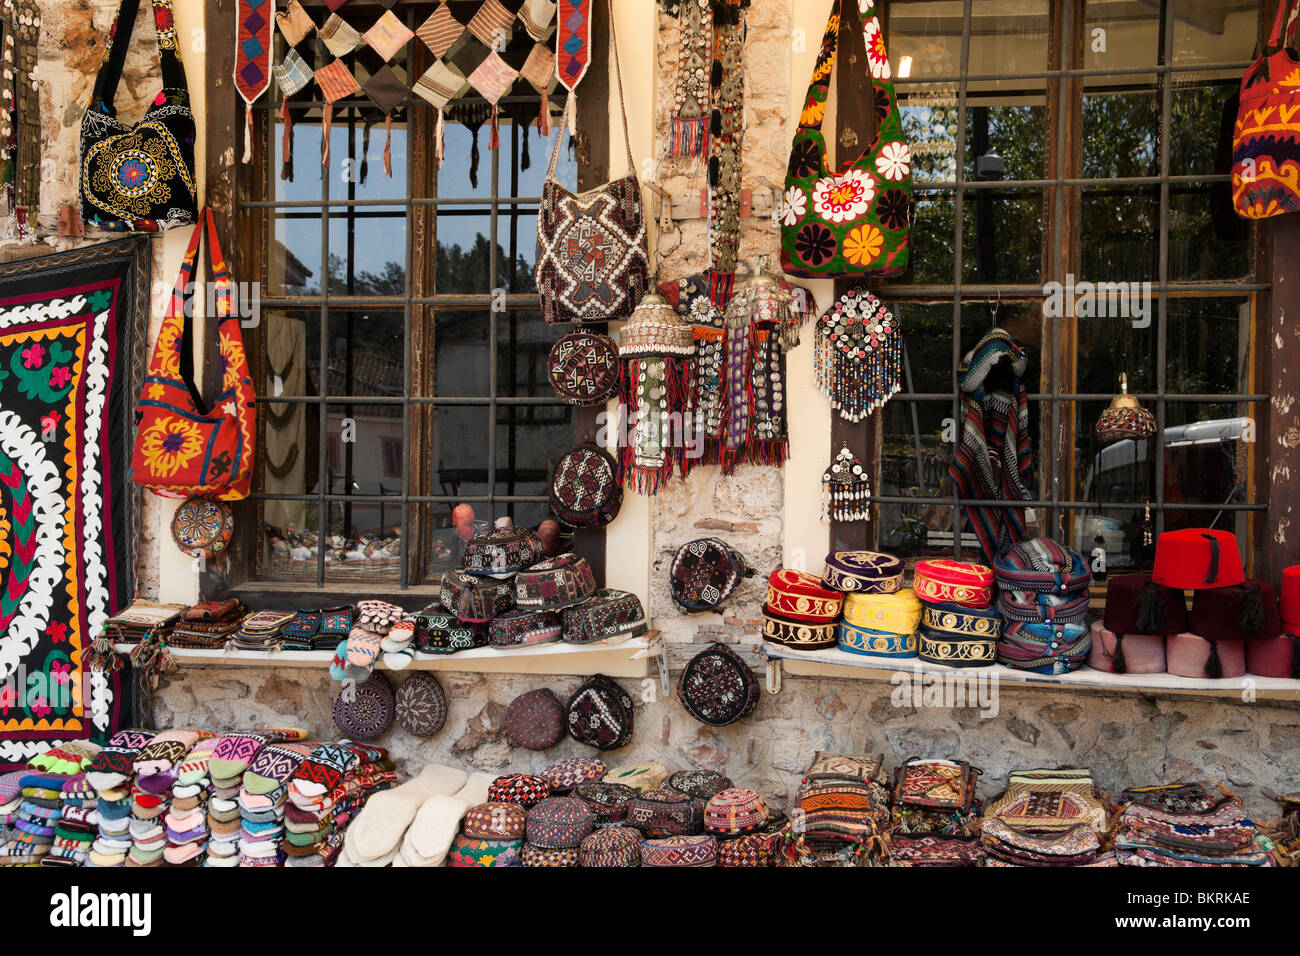 Turkish socks, caps and other crafts for sale in old Antalya town - Stock Image